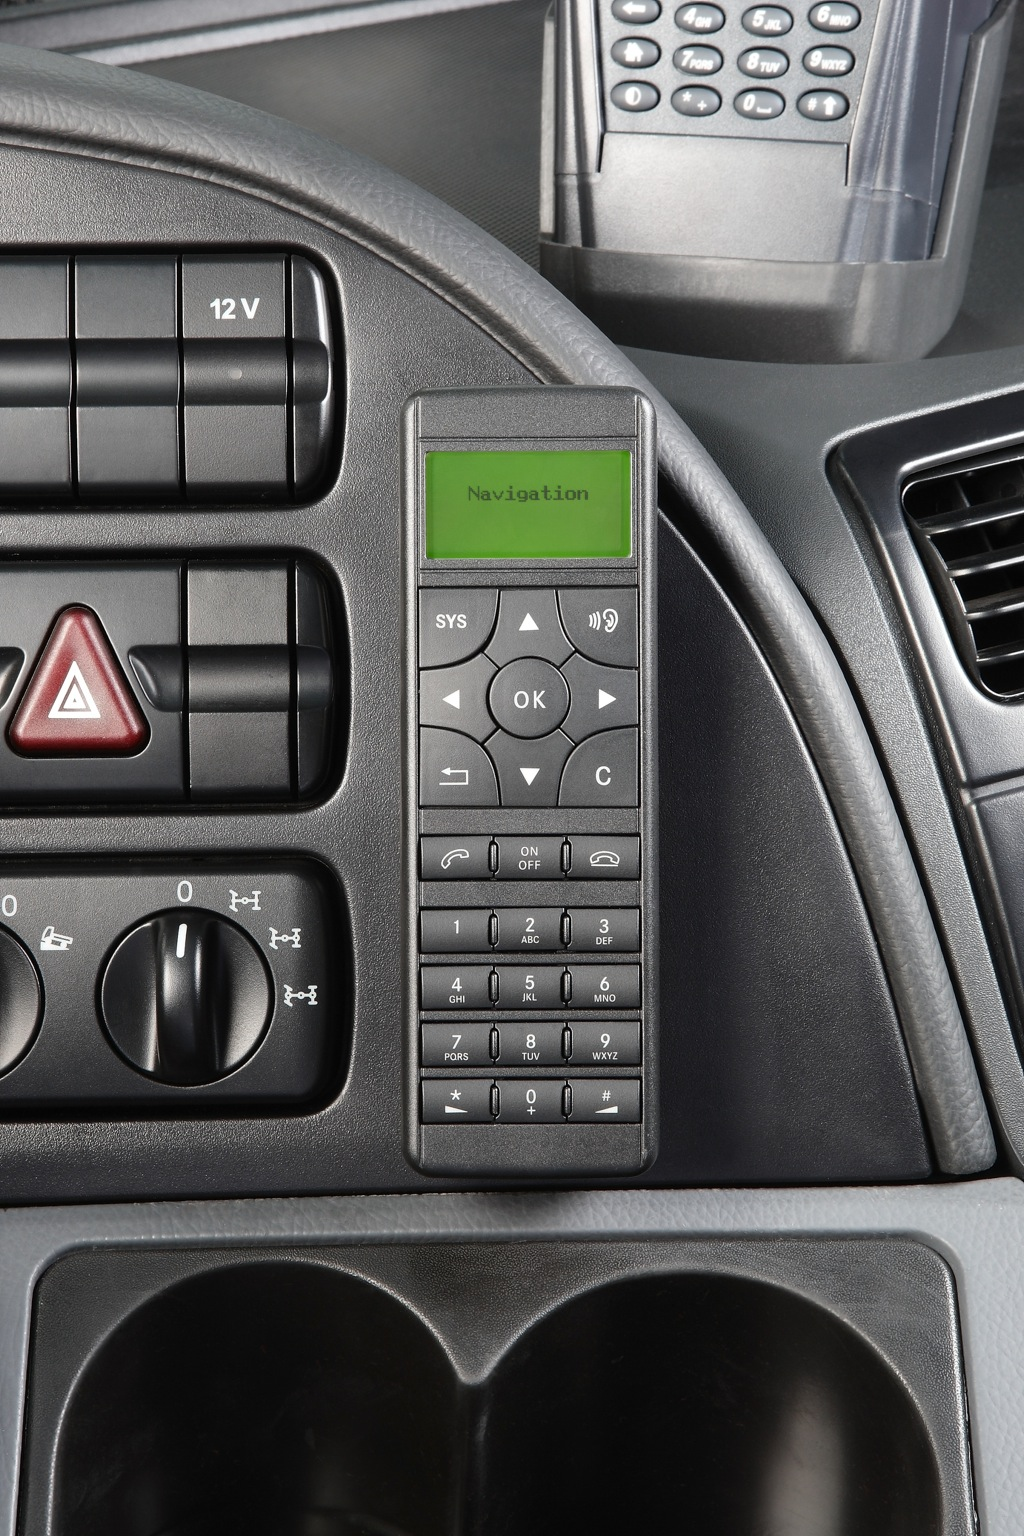 Can You Still Buy Portable Gps Systems For Cars